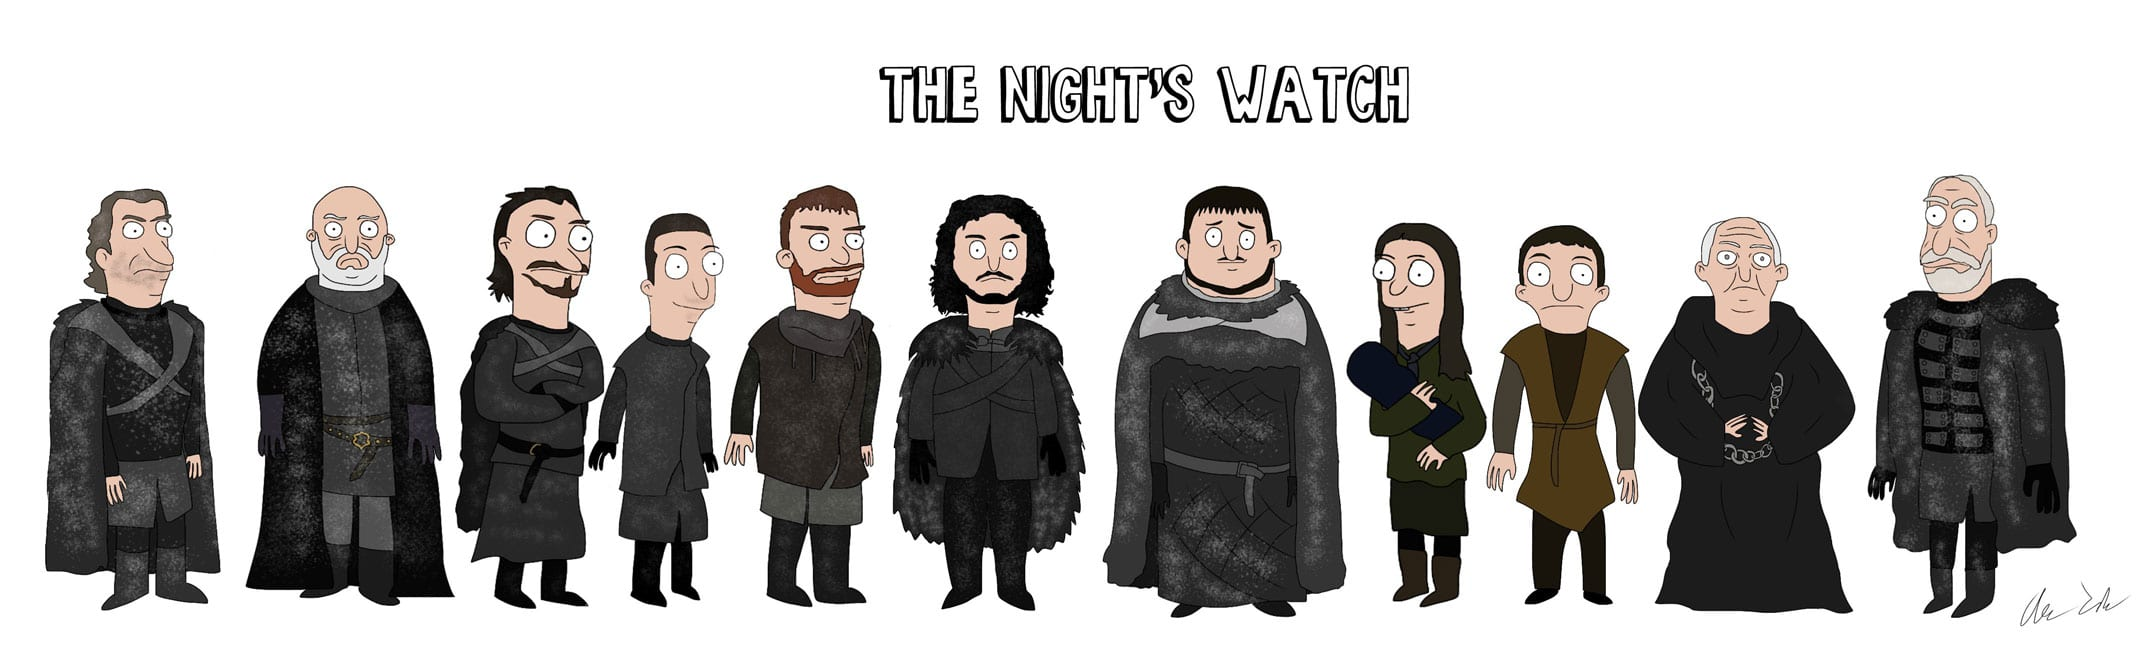 Game_of_Burgers_06 Bob's Burgers meets Game of Thrones